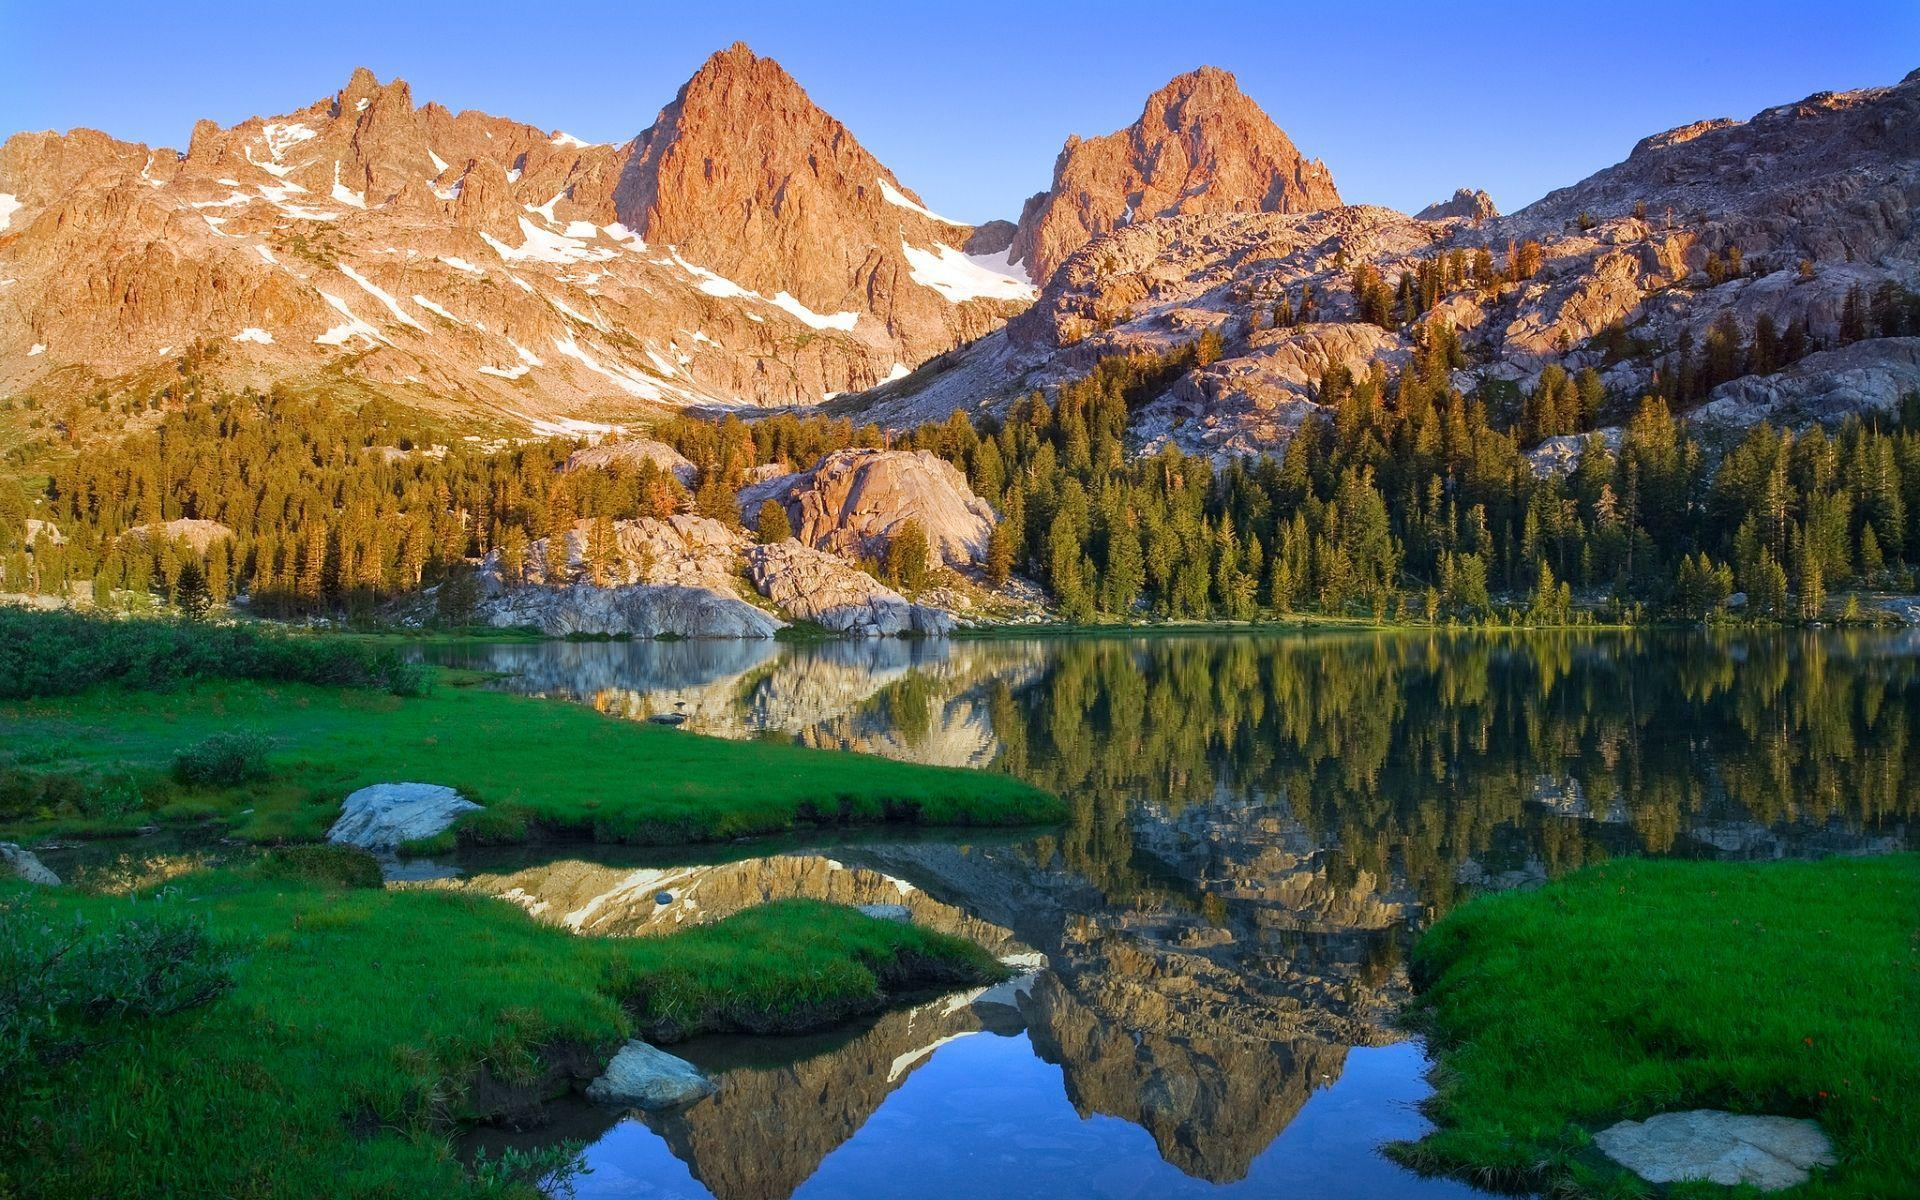 Ansel Adams Wilderness wallpapers